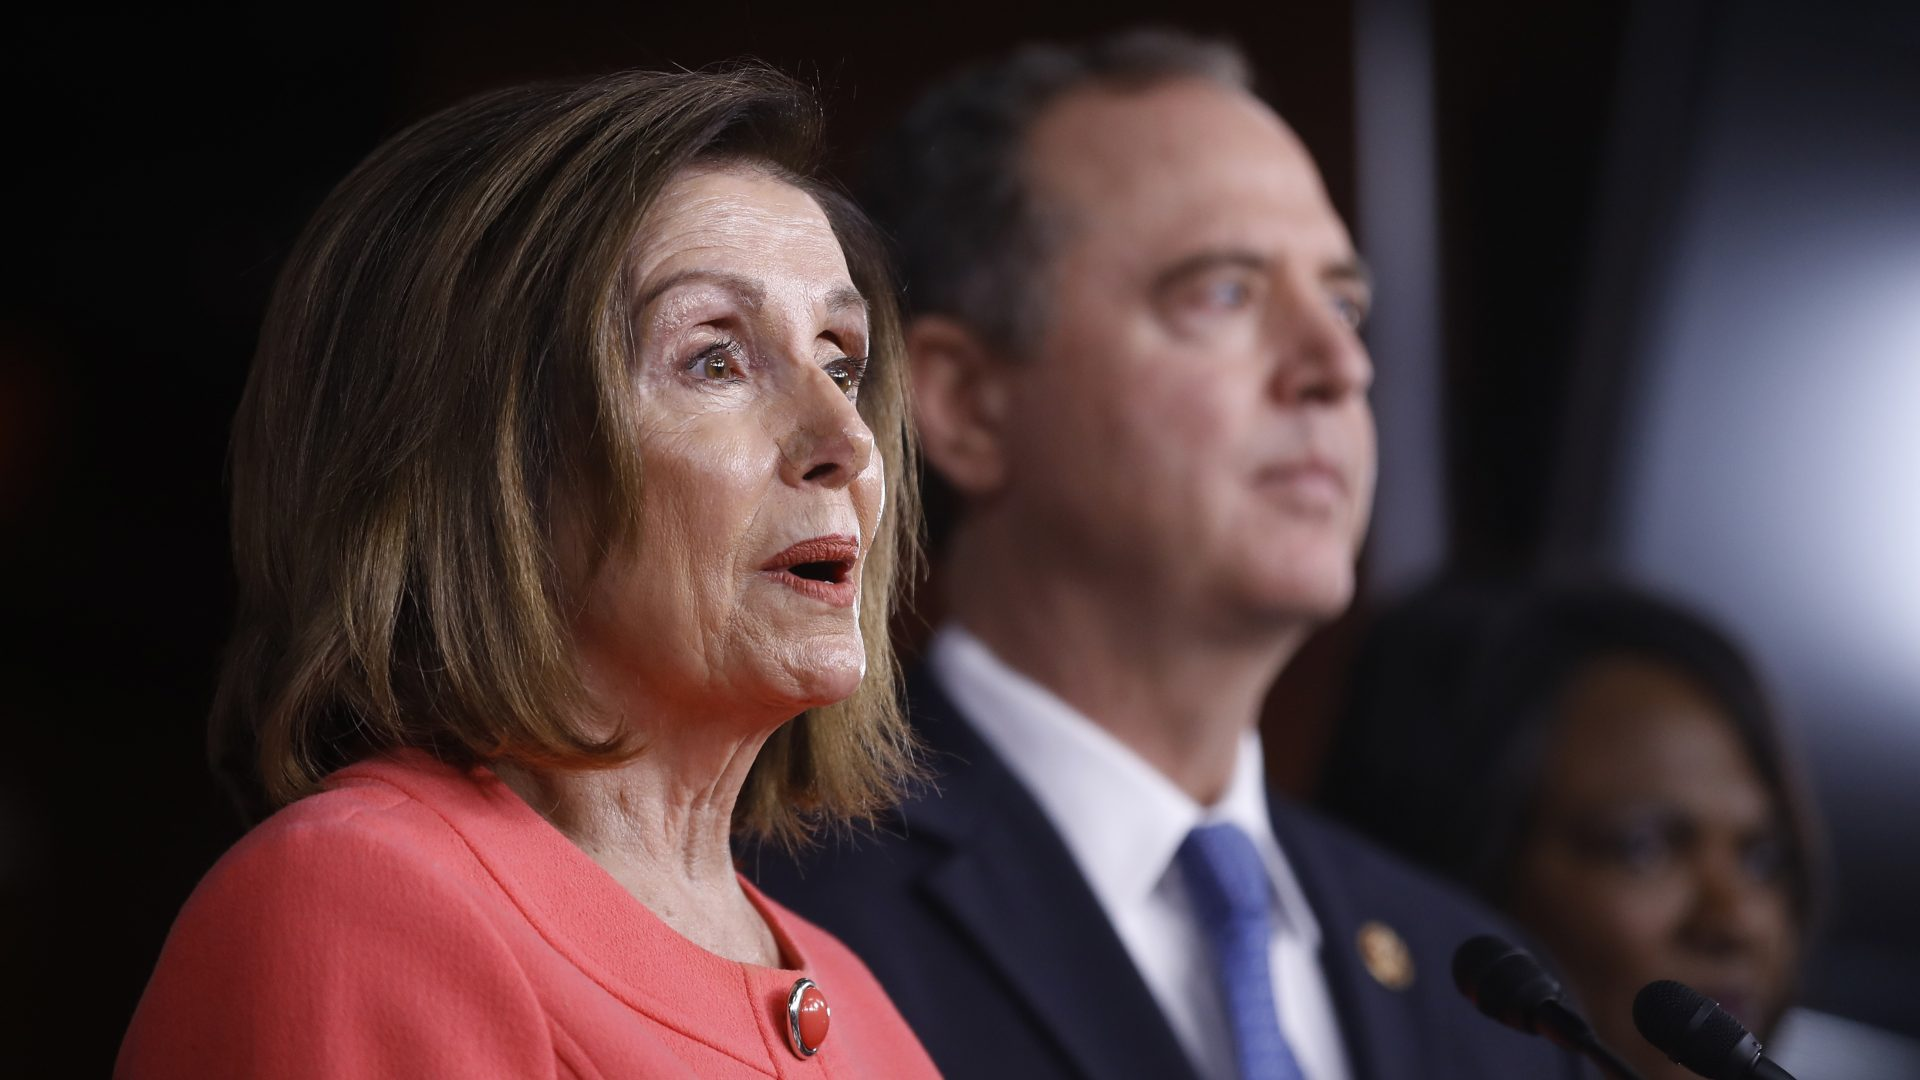 House Speaker Nancy Pelosi is joined by House Intelligence Committee Chairman Adam Schiff at a news conference to announce impeachment managers on Capitol Hill on Wednesday.